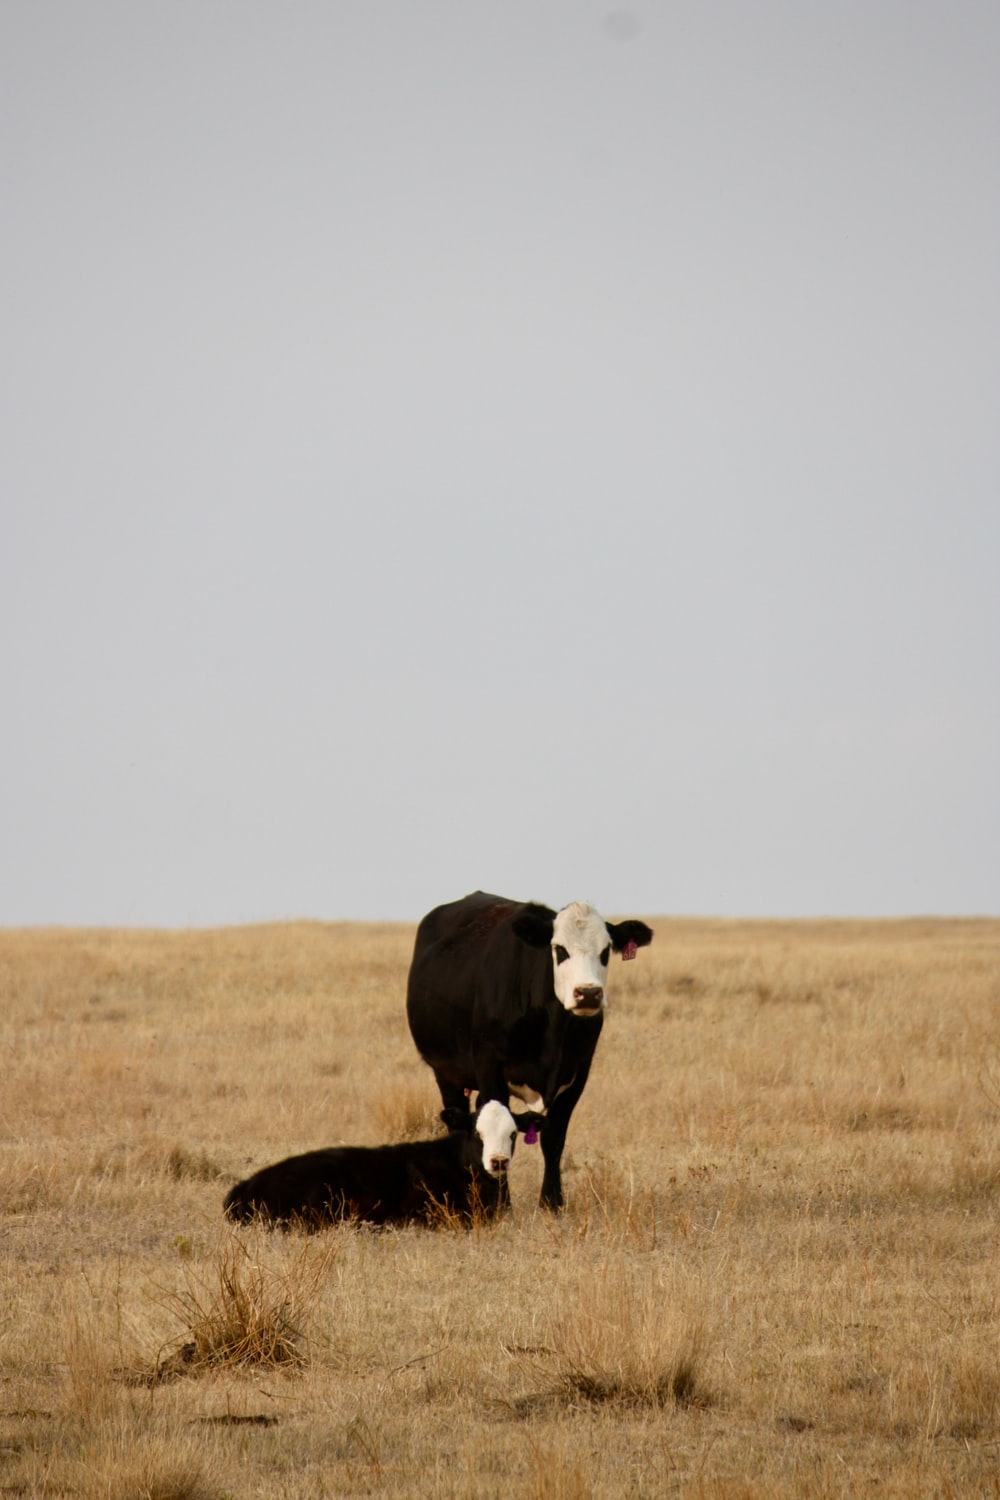 black and white cow on brown grass field during daytime